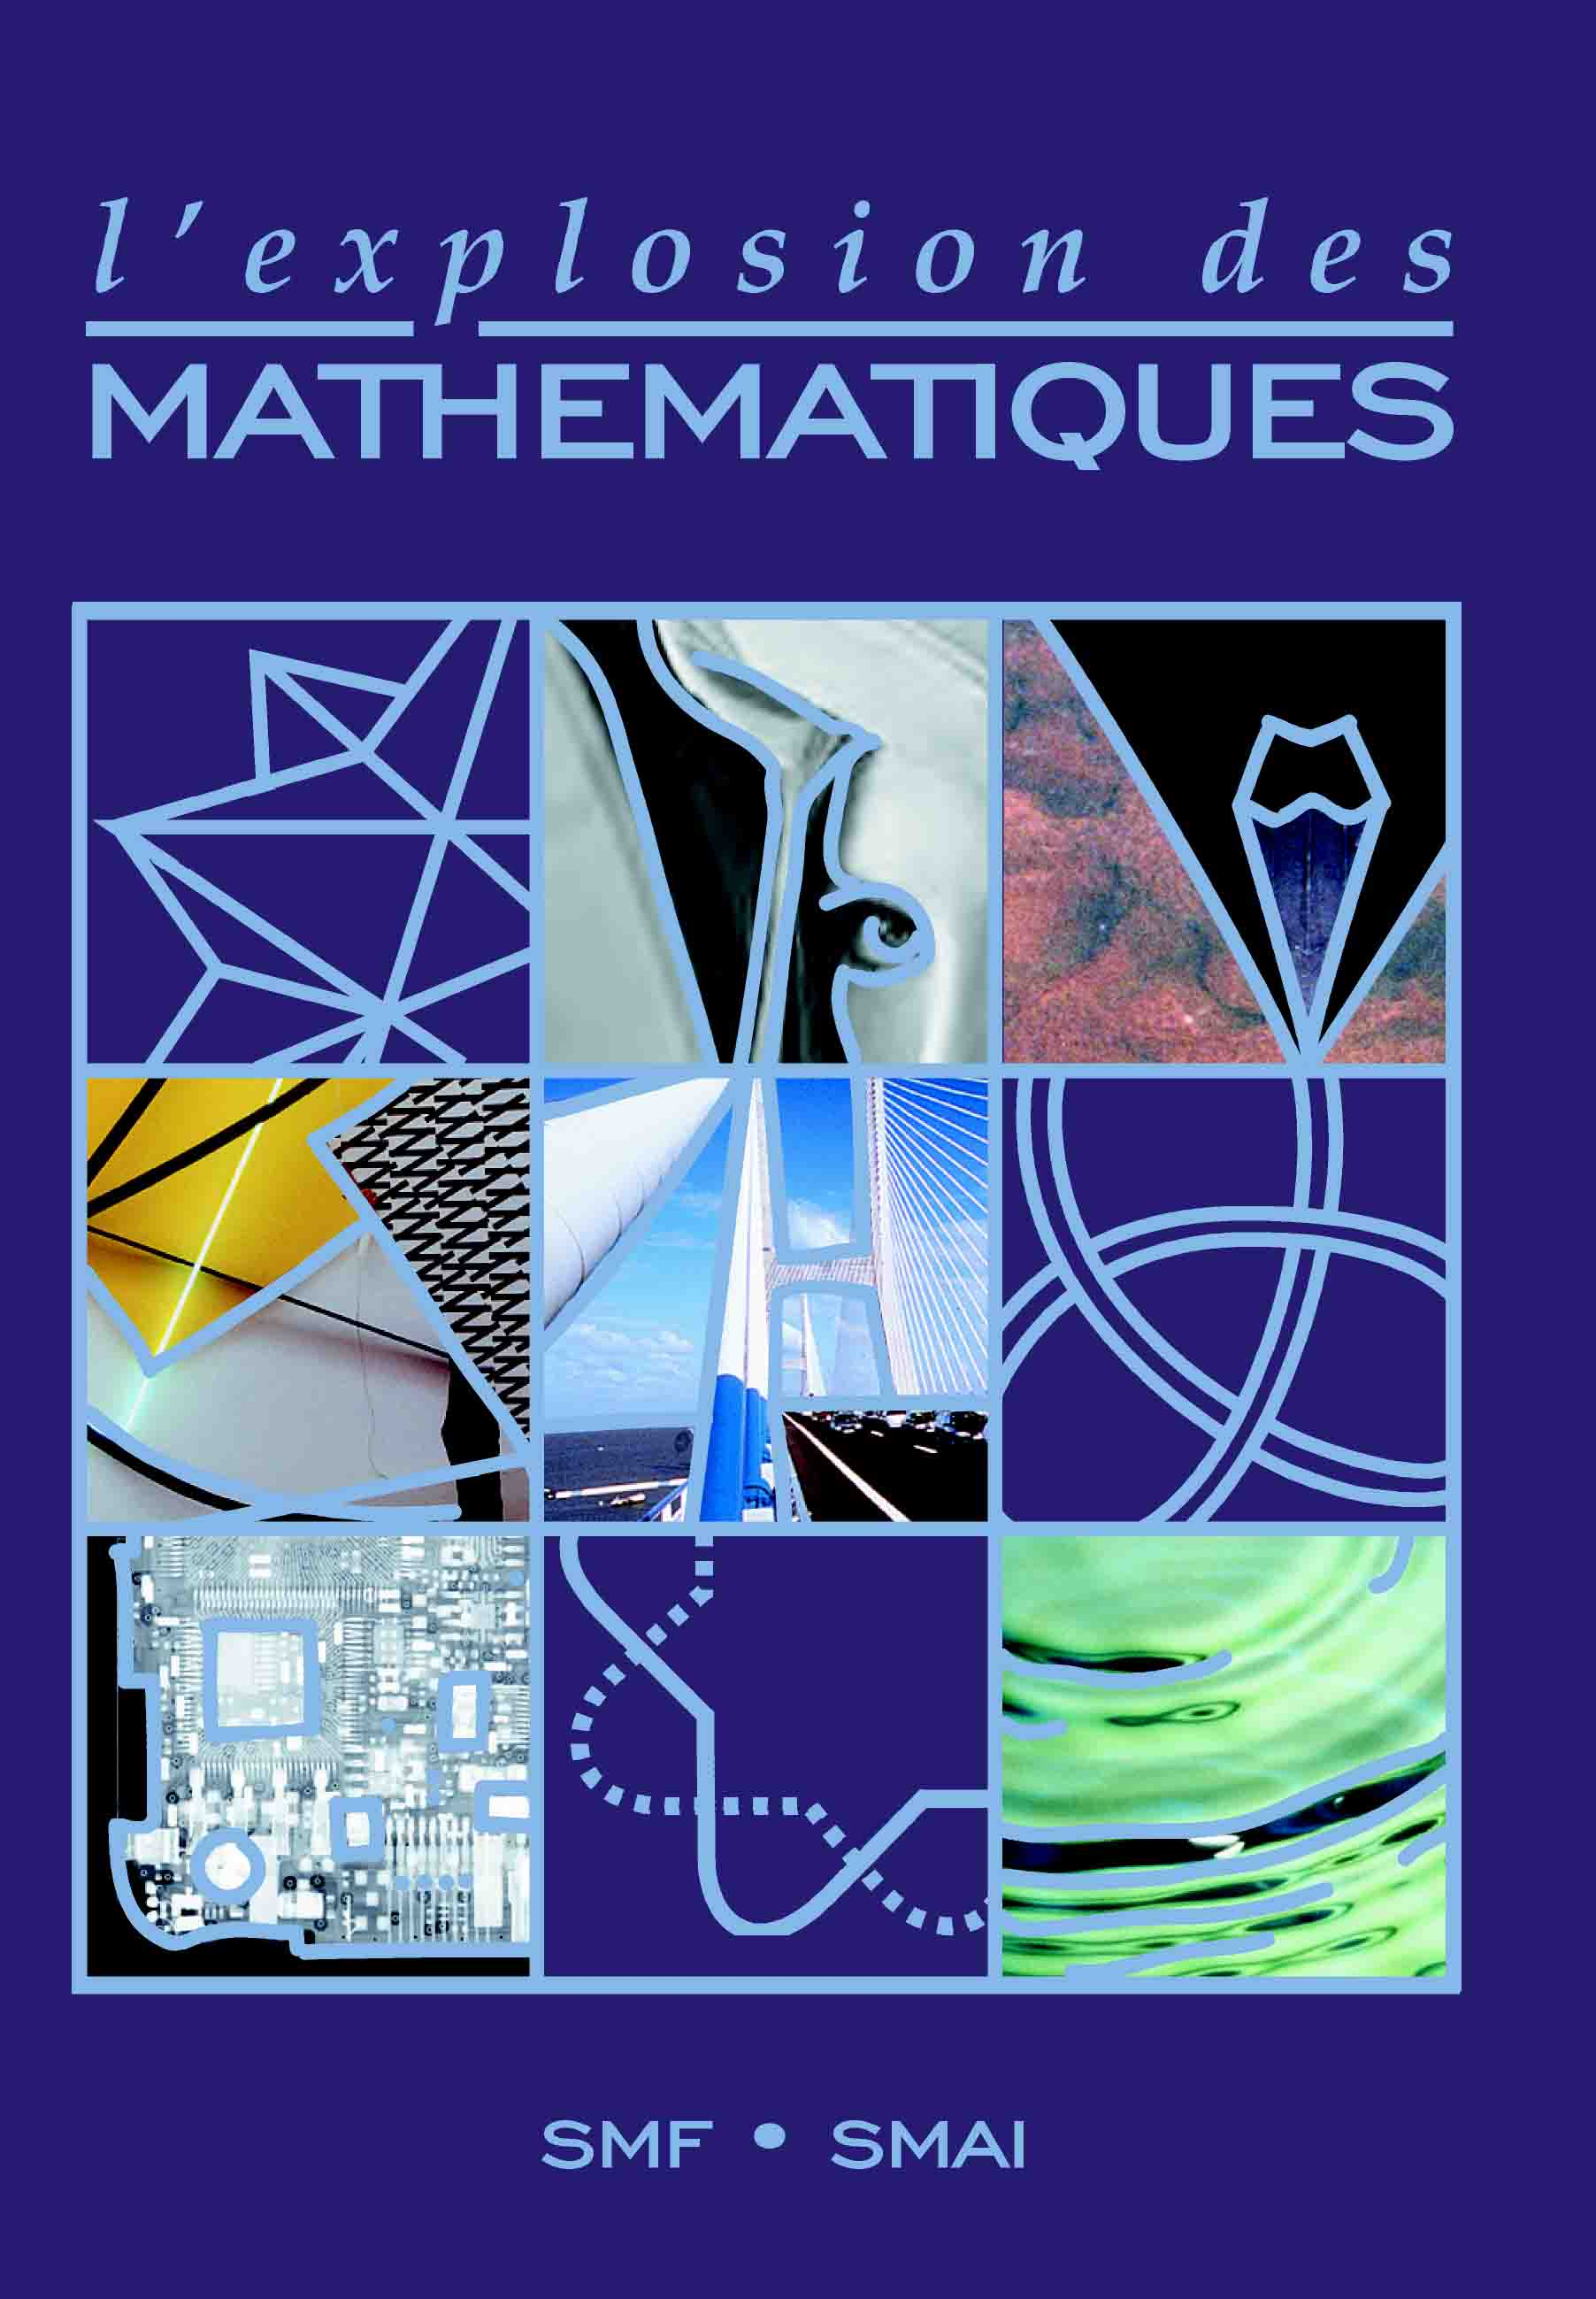 societe mathematique de france - explosion des mathematiques